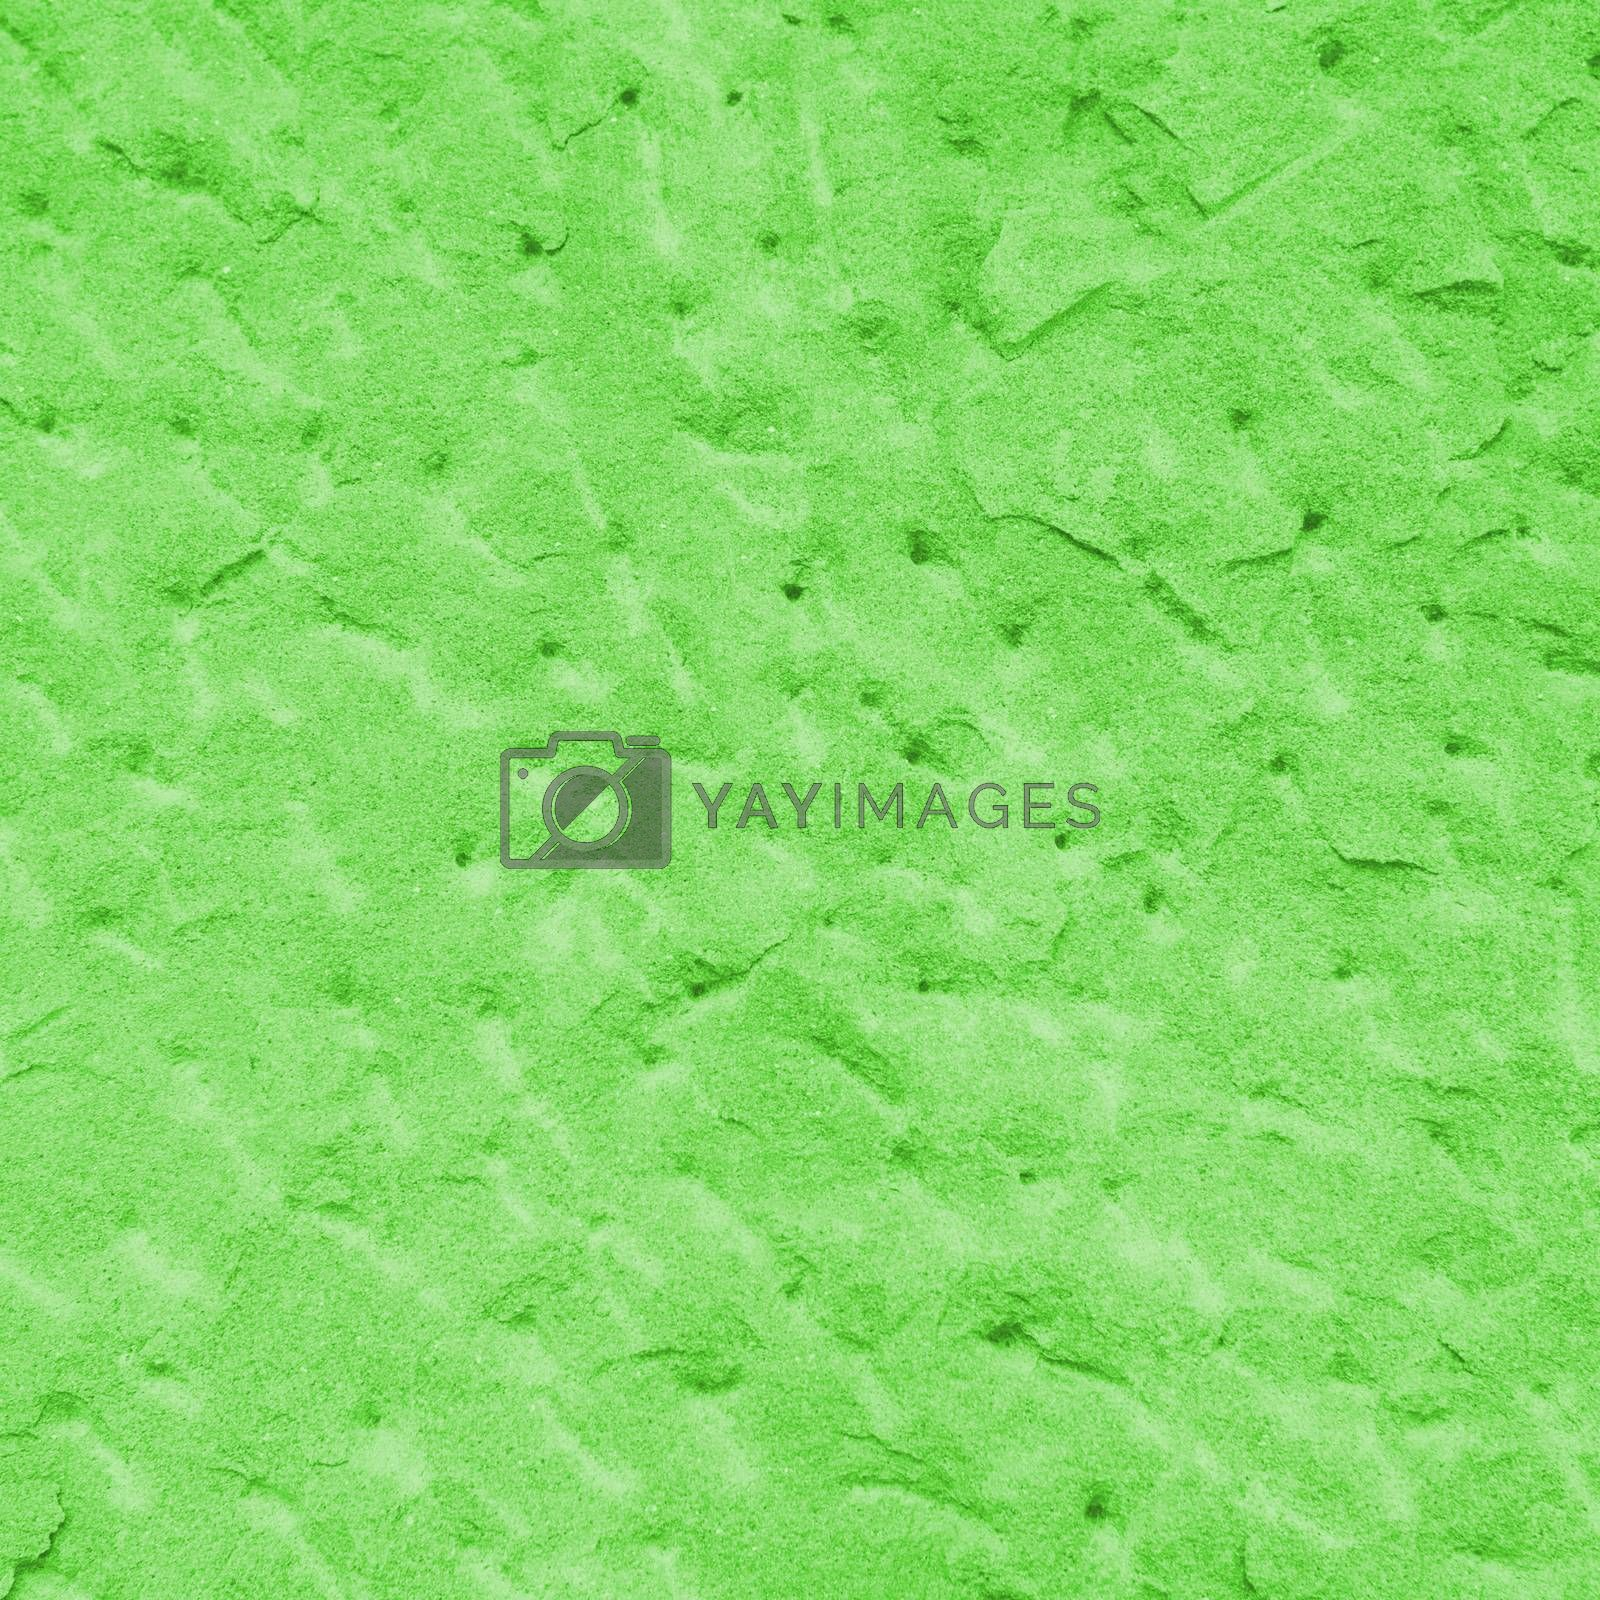 Royalty free image of Pattern by tuchkay